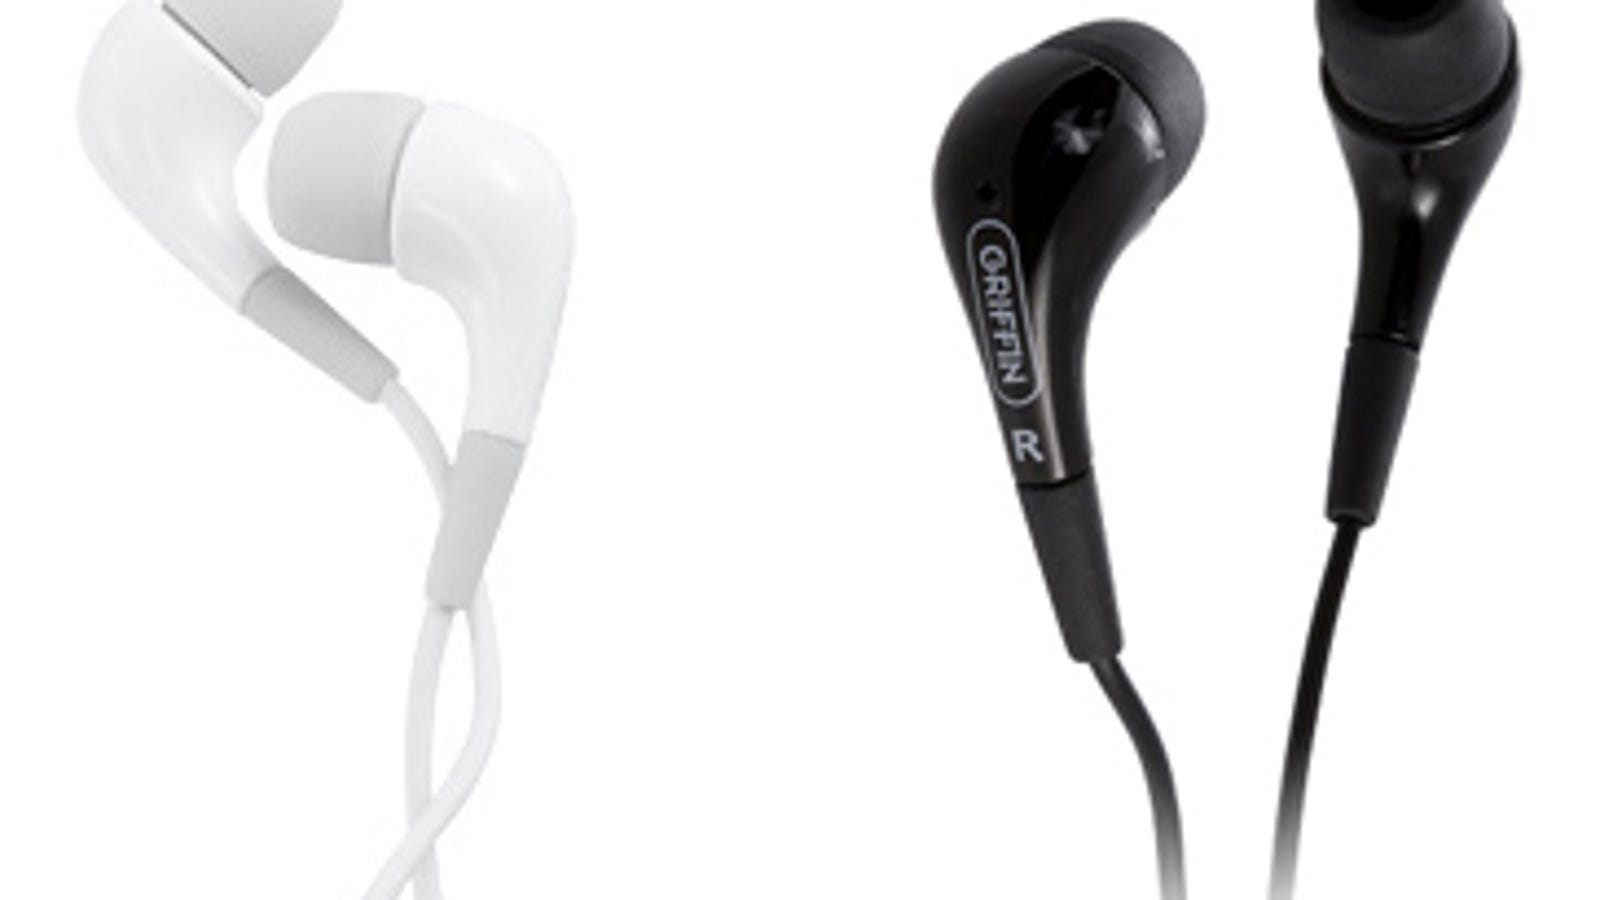 bose earbuds only - Breaking News: Griffin Releases More iPod Accessories